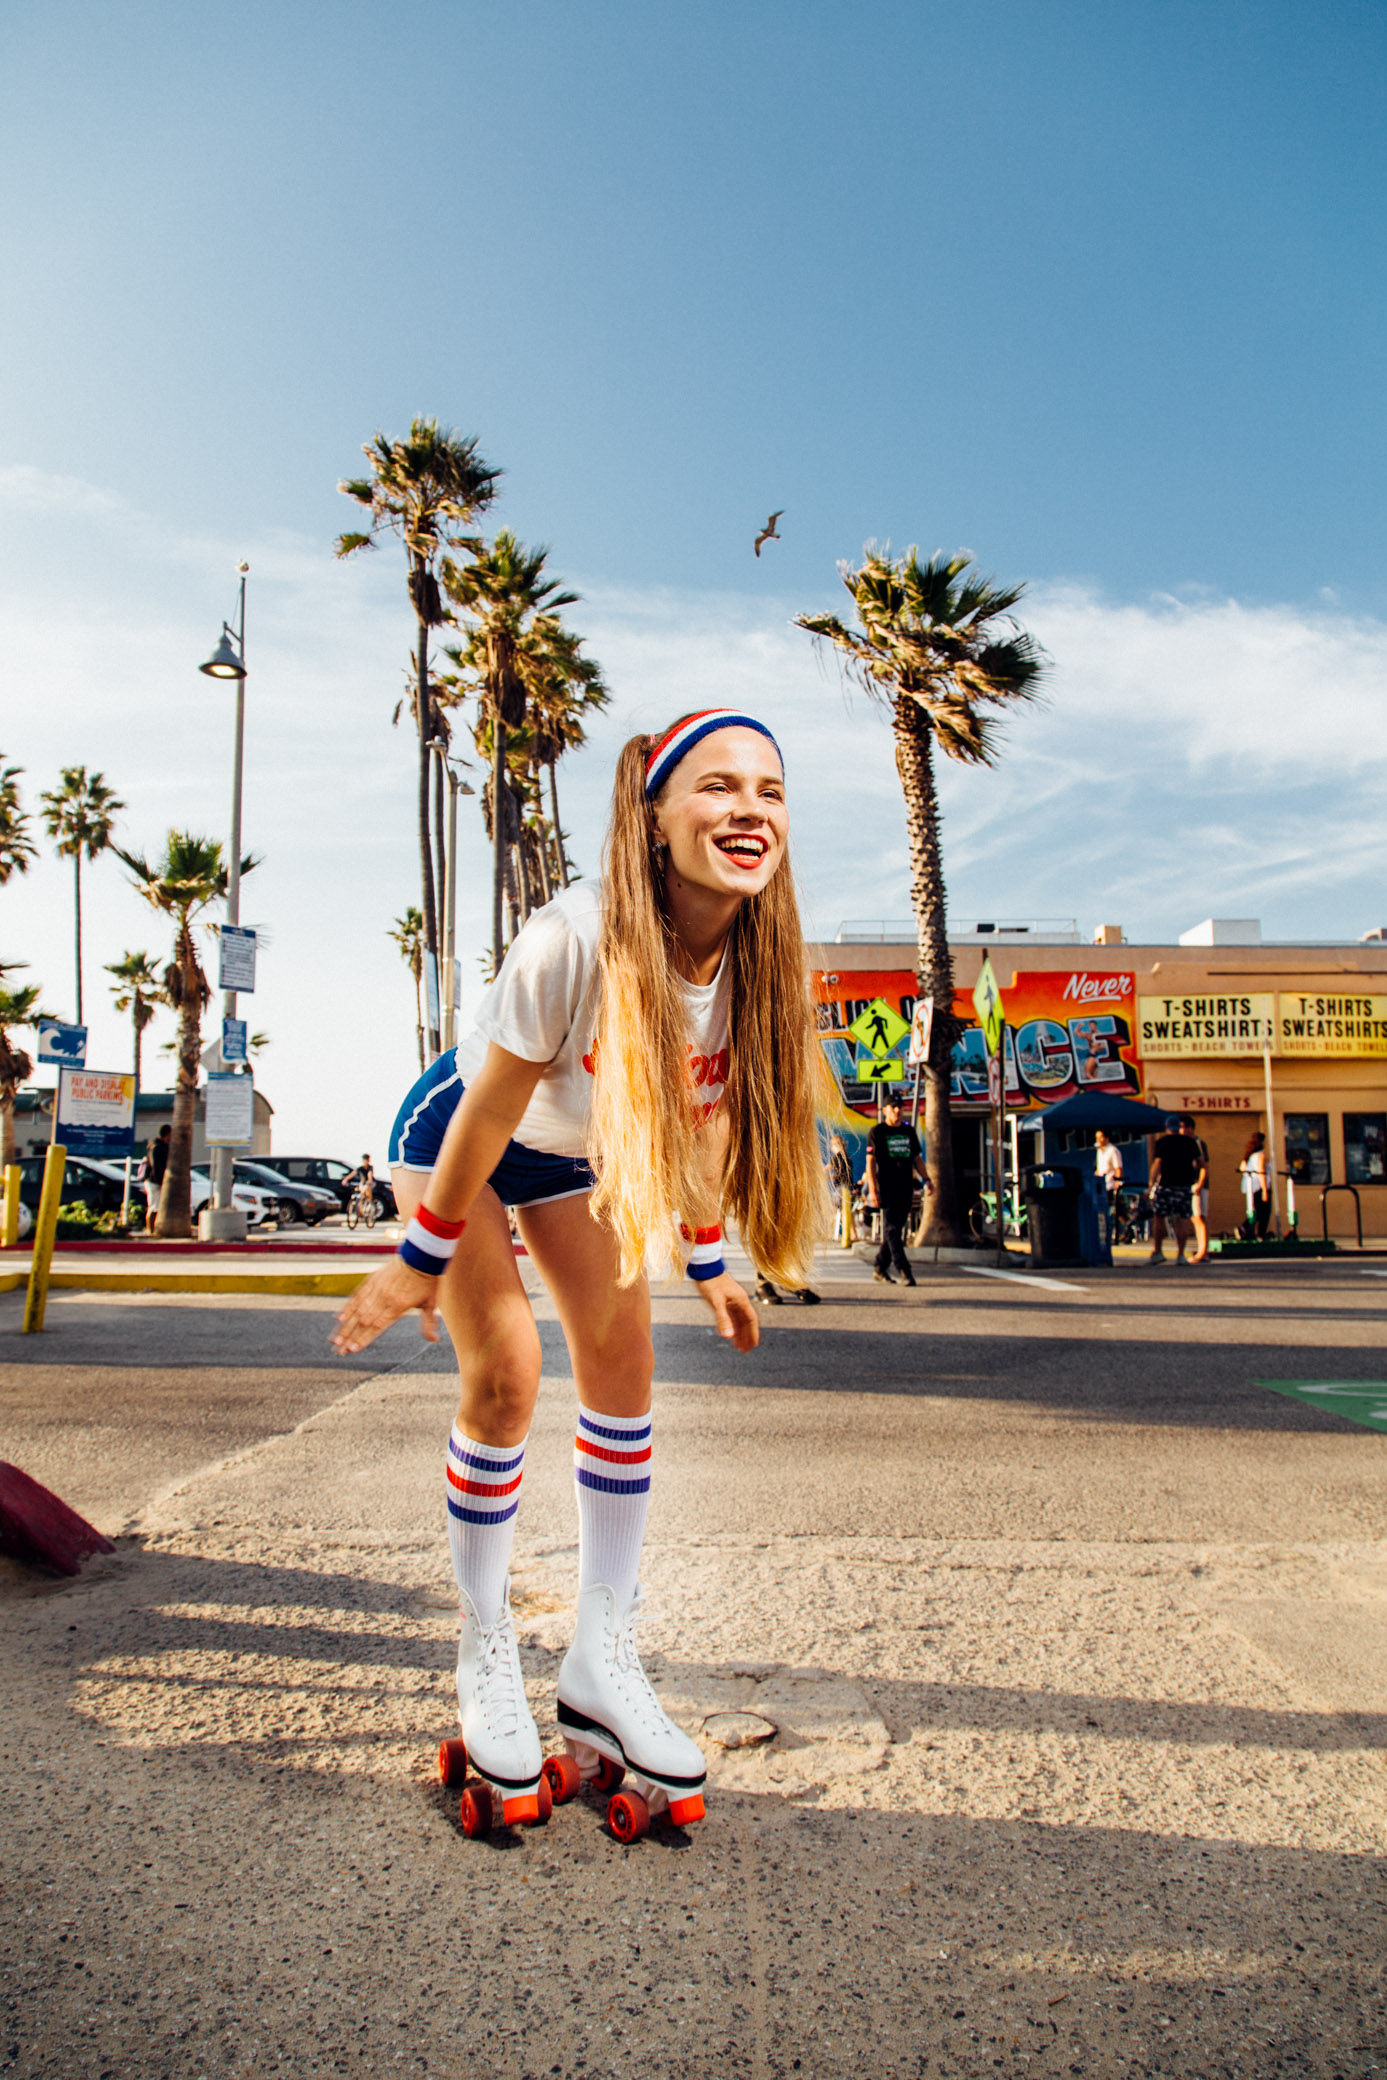 Retro Photoshoot in Venice Beach